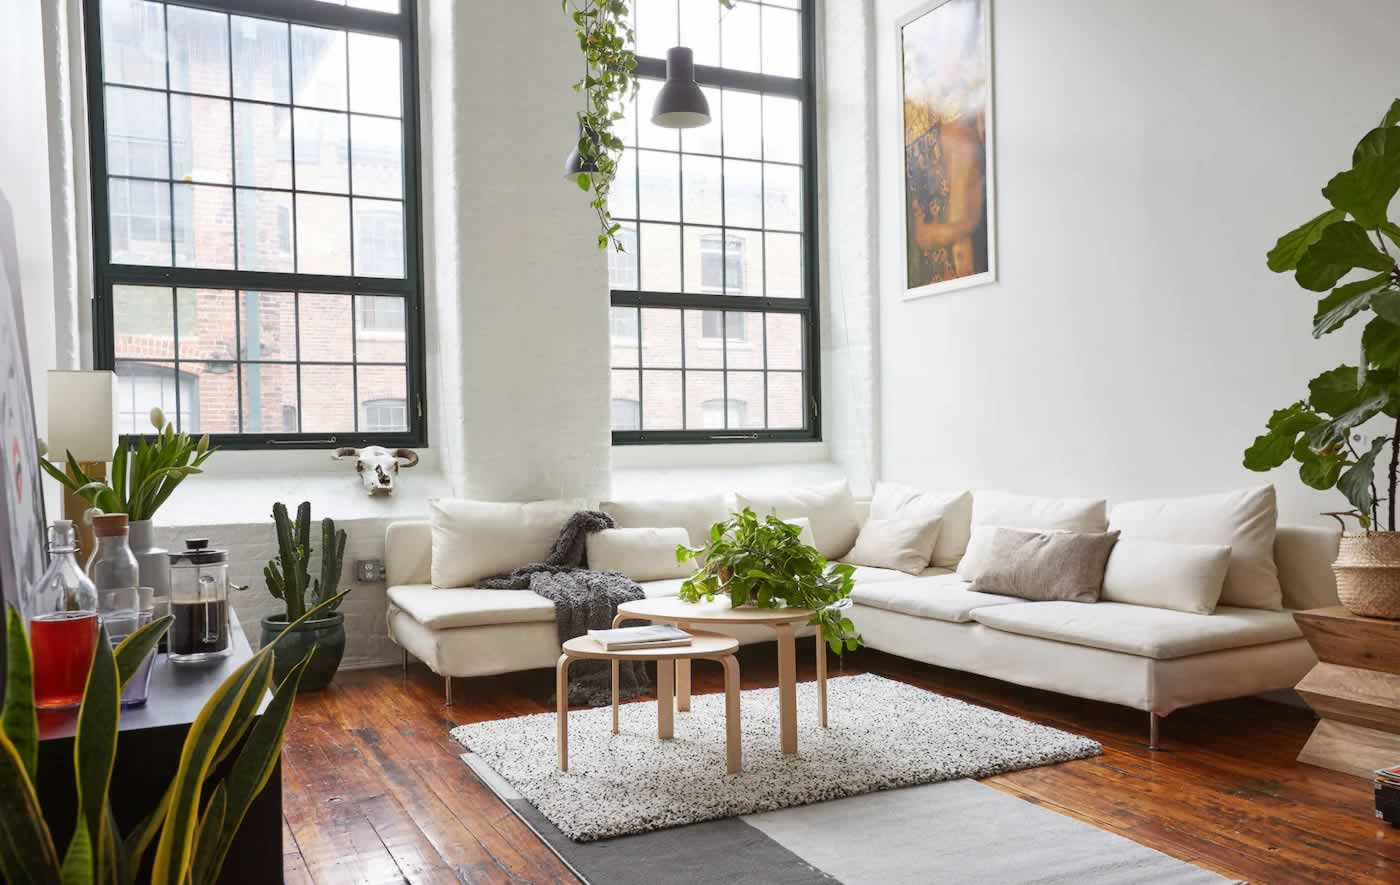 IKEA Ideas - Modern loft living